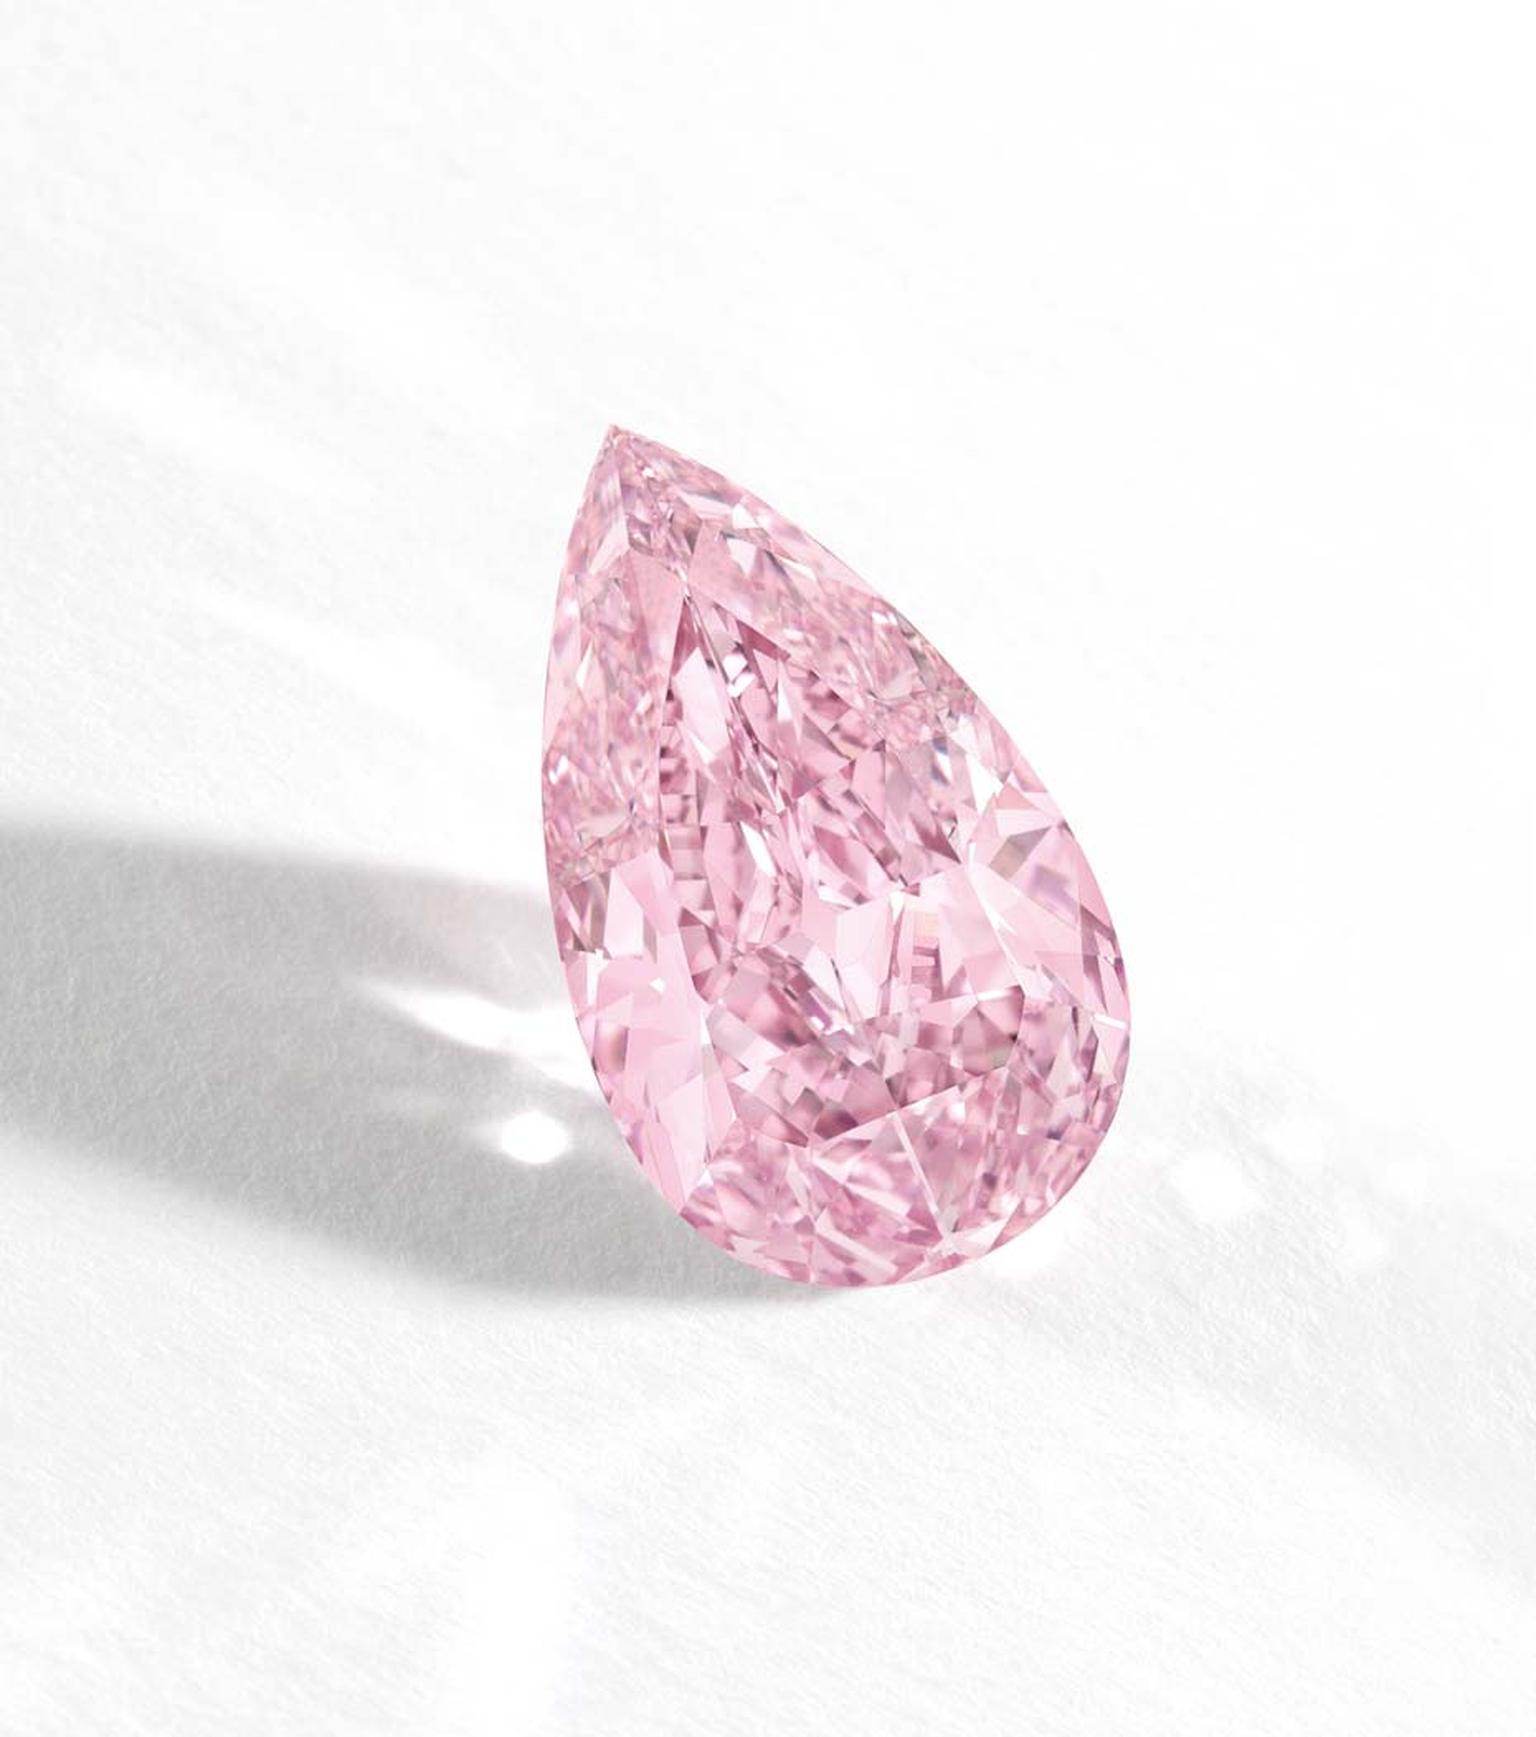 At Sotheby's Hong Kong in October 2014, a 8.41 carat Fancy Vivid Purple-Pink Internally Flawless diamond sold for $17,768,041 or $2,112,727 per carat, entering the record books as the highest price paid per carat for any pink diamond.